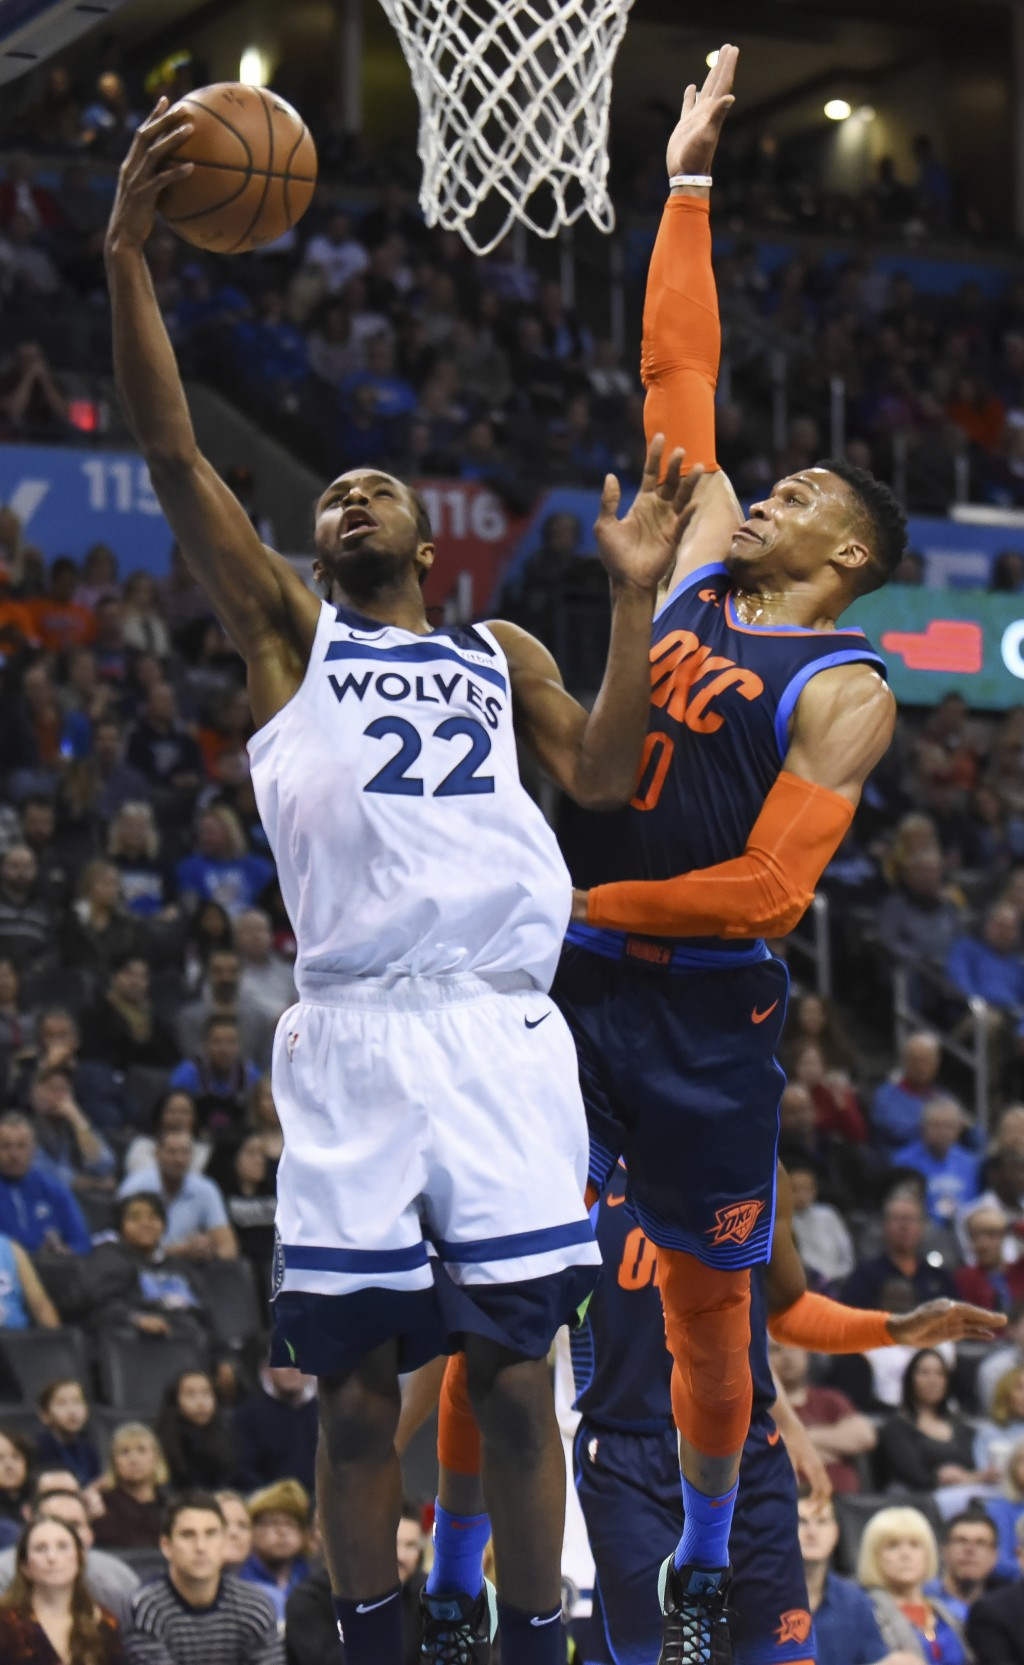 Oklahoma City Thunder guard Russell Wesbrook (0) tries to block a shot by Minnesota Timberwolves guard Andrew Wiggins (22) in the first half of an NBA...